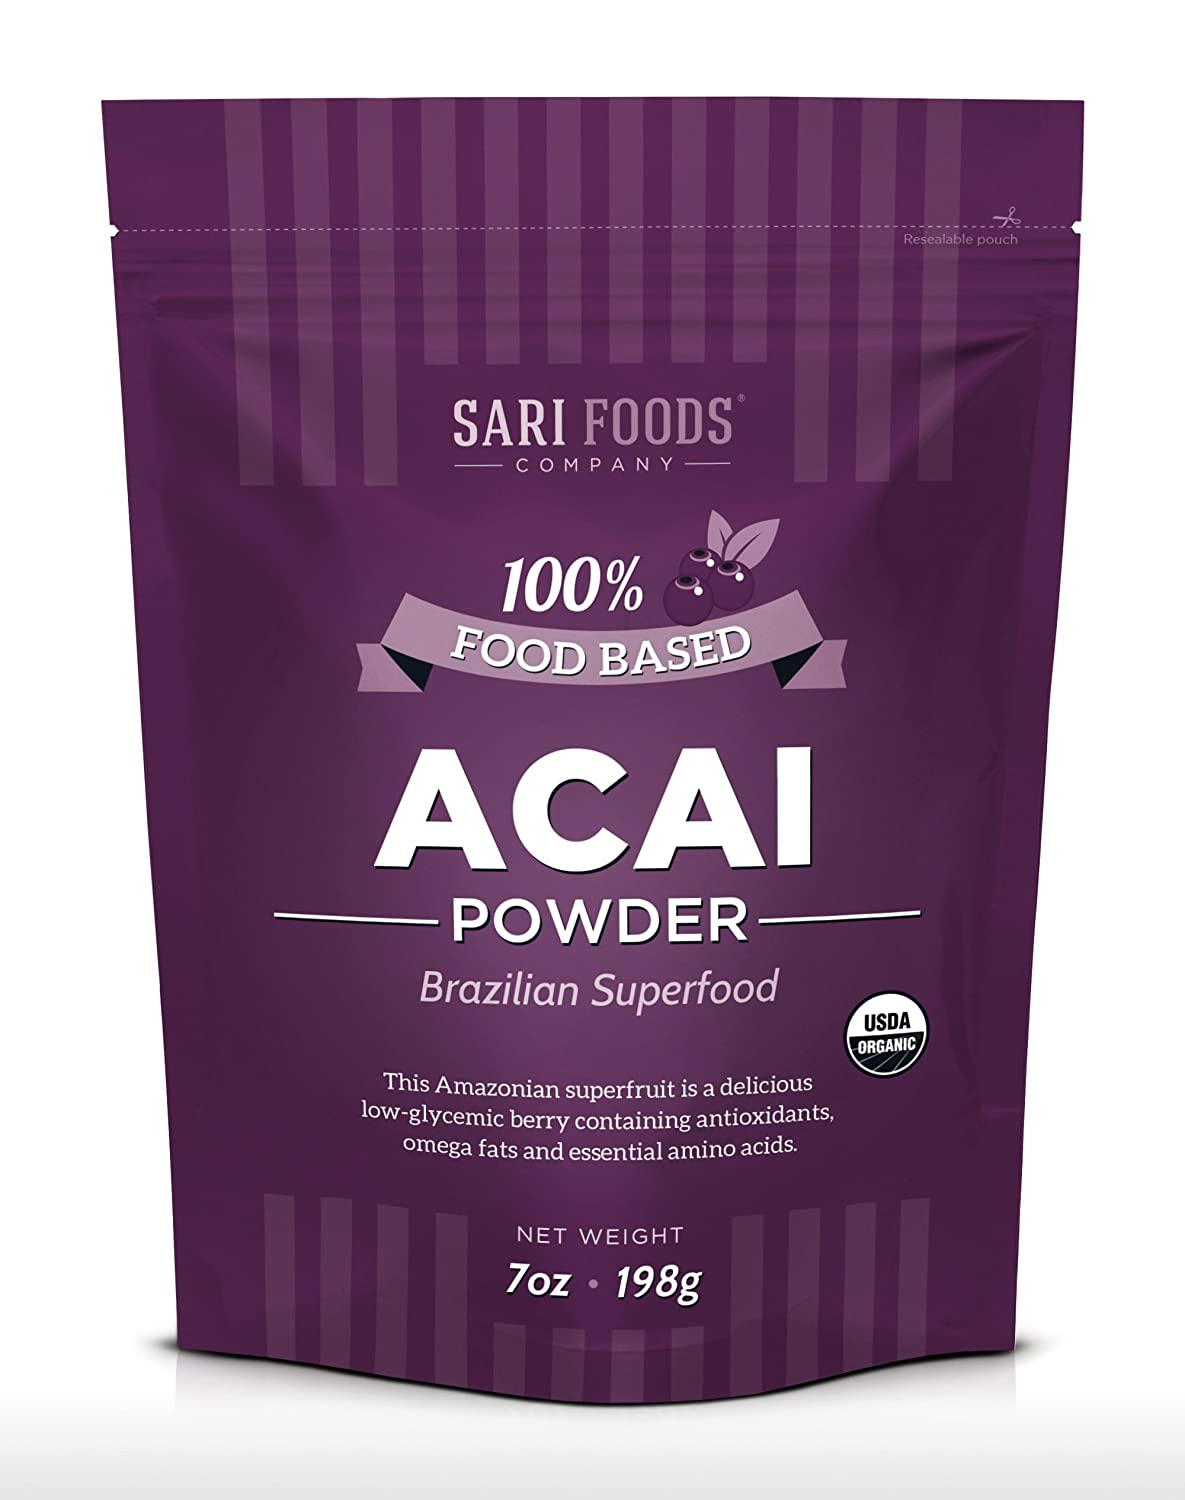 Organic Acai Powder (7 Ounce): Natural Freeze Dried Superfood, Non-Synthetic & Naturally Occurring Plant Based Nutrition, Antioxidants, Omega Fatty Acids, Essential Amino Acids, Calcium, and Iron.